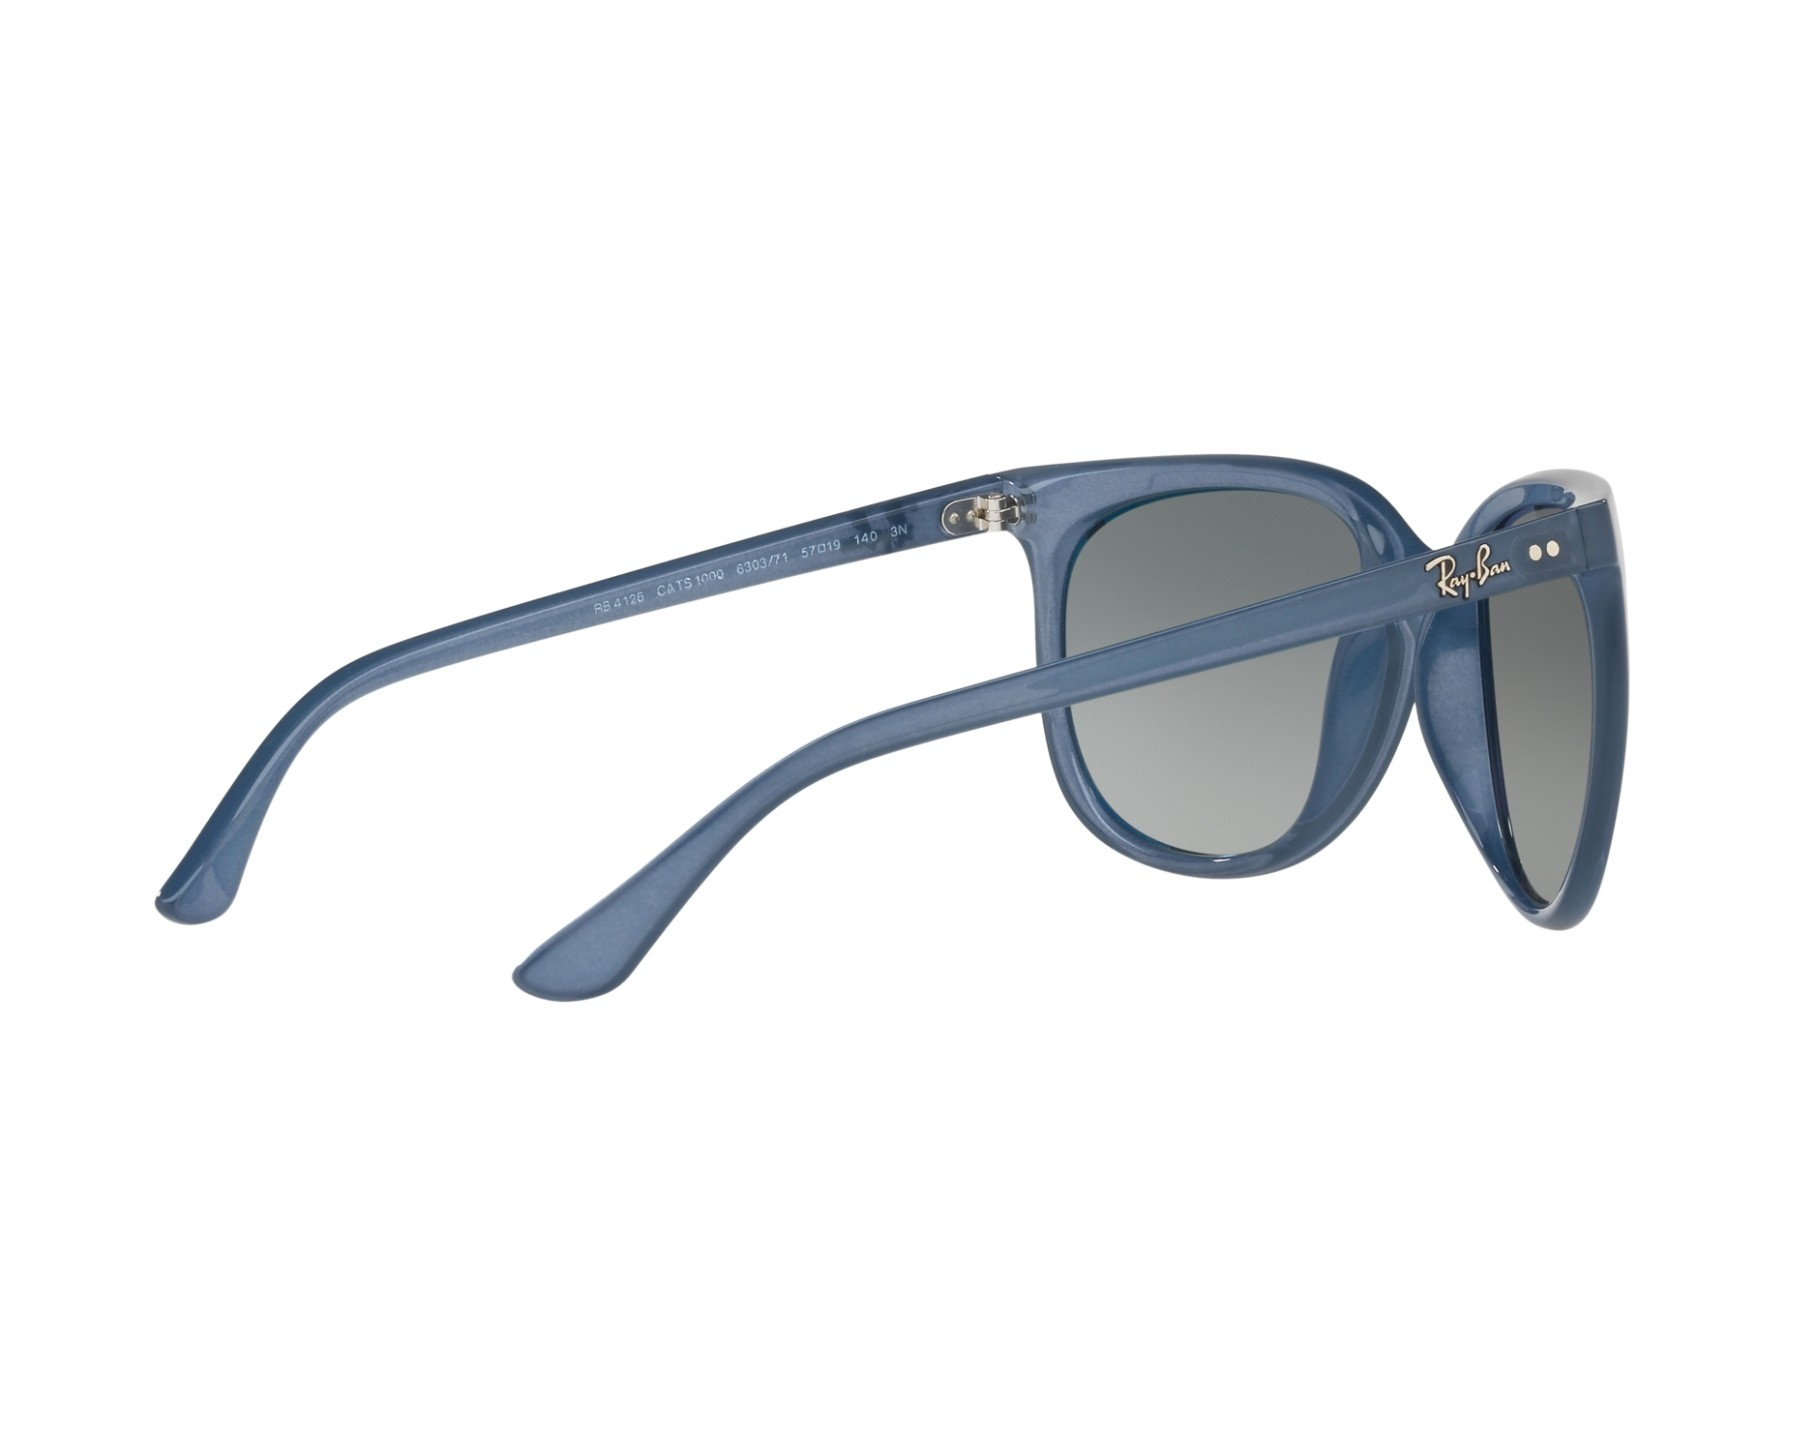 427a7fef7074c ... discount code for sunglasses ray ban rb 4126 630371 57 15 blue 360  degree view 9